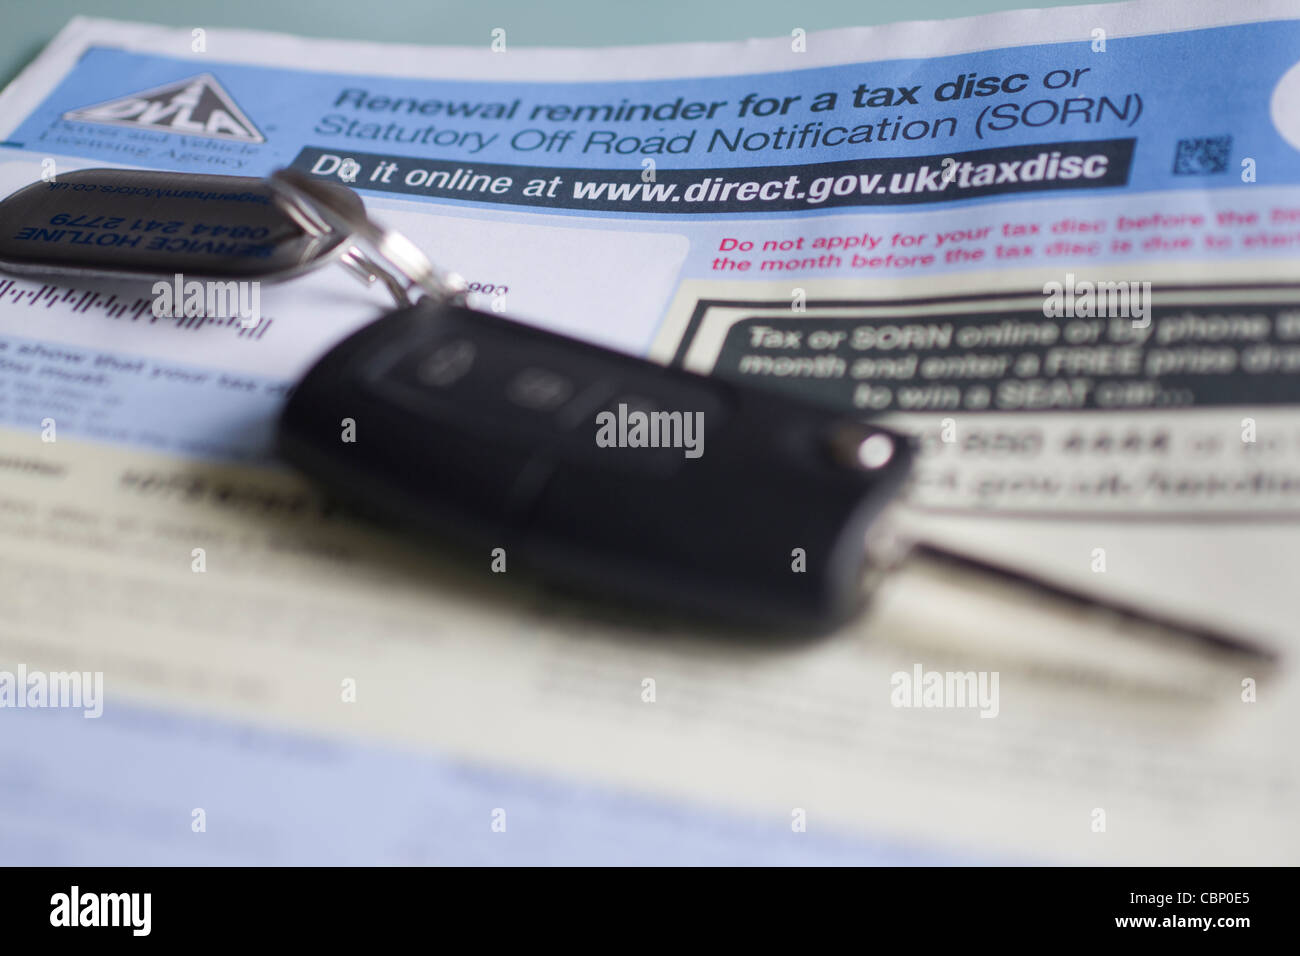 Road fund licence, renewal reminder for tax disc or stautory off road notice Car tax sorn - Stock Image